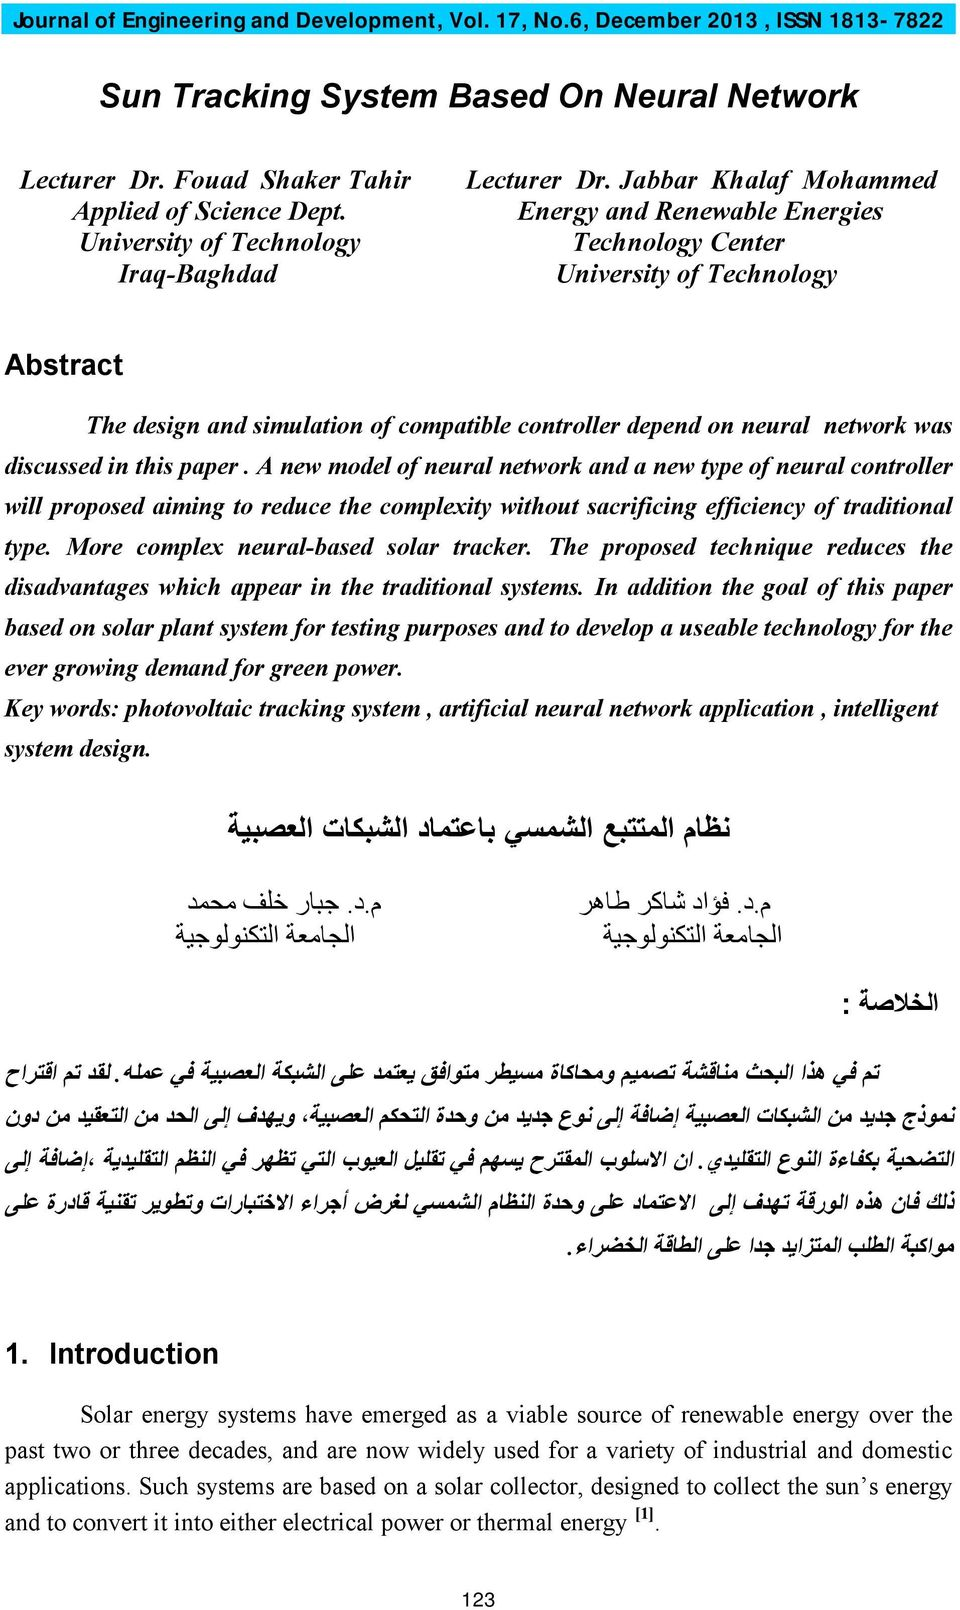 Jabbar Khalaf Mohammed Energy and Renewable Energies Technology Center University of Technology Abstract The design and simulation of compatible controller depend on neural network was discussed in